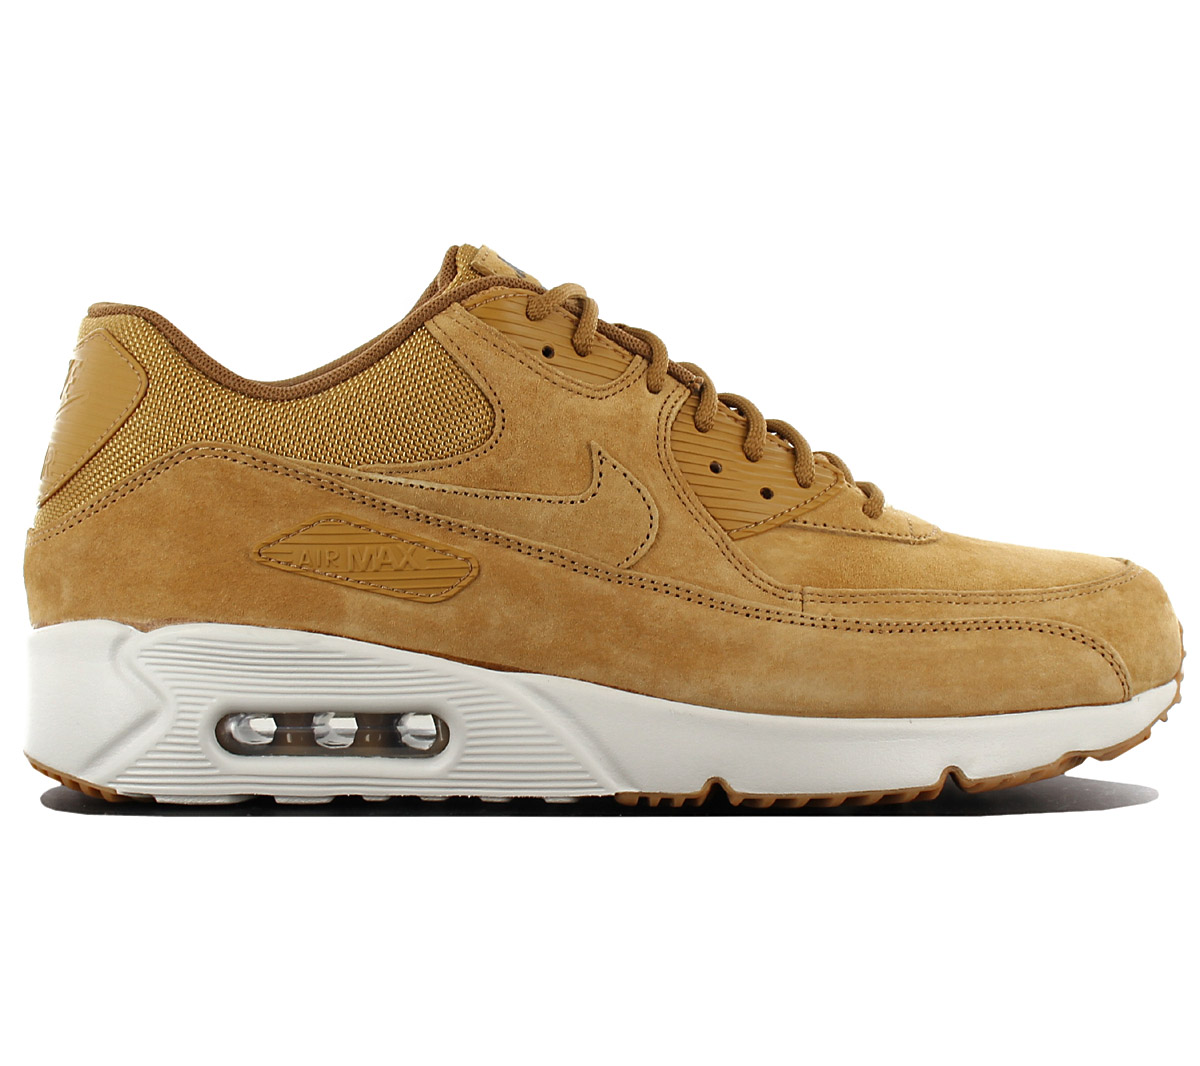 79e275f37478 Nike Air Max 90 Ultra 2.0 Leather Ltr Men s Sneakers Shoes Brown ...